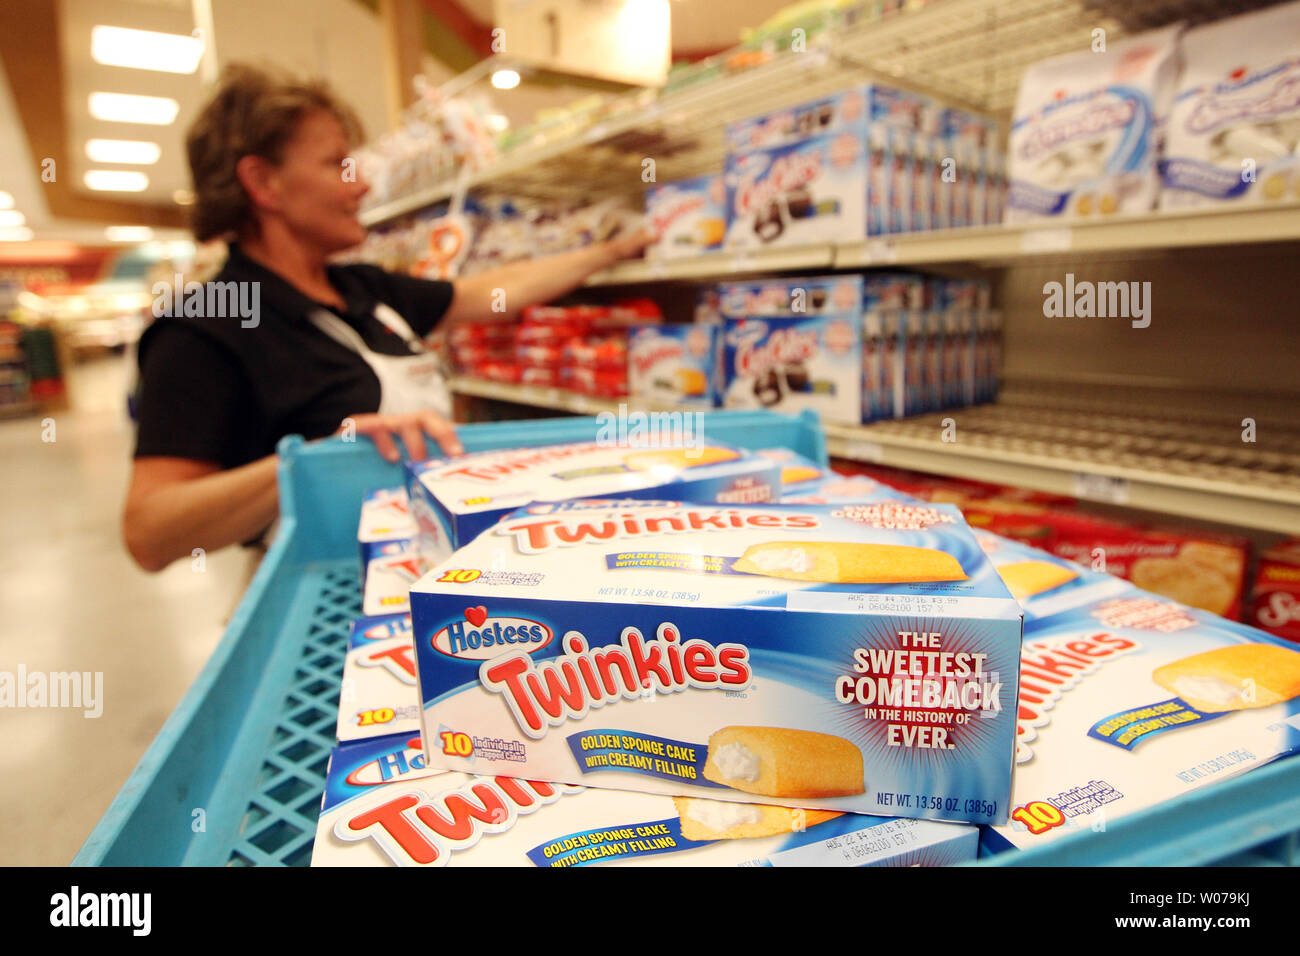 Lori Silvey, assistant bakery manager, stocks the shelves